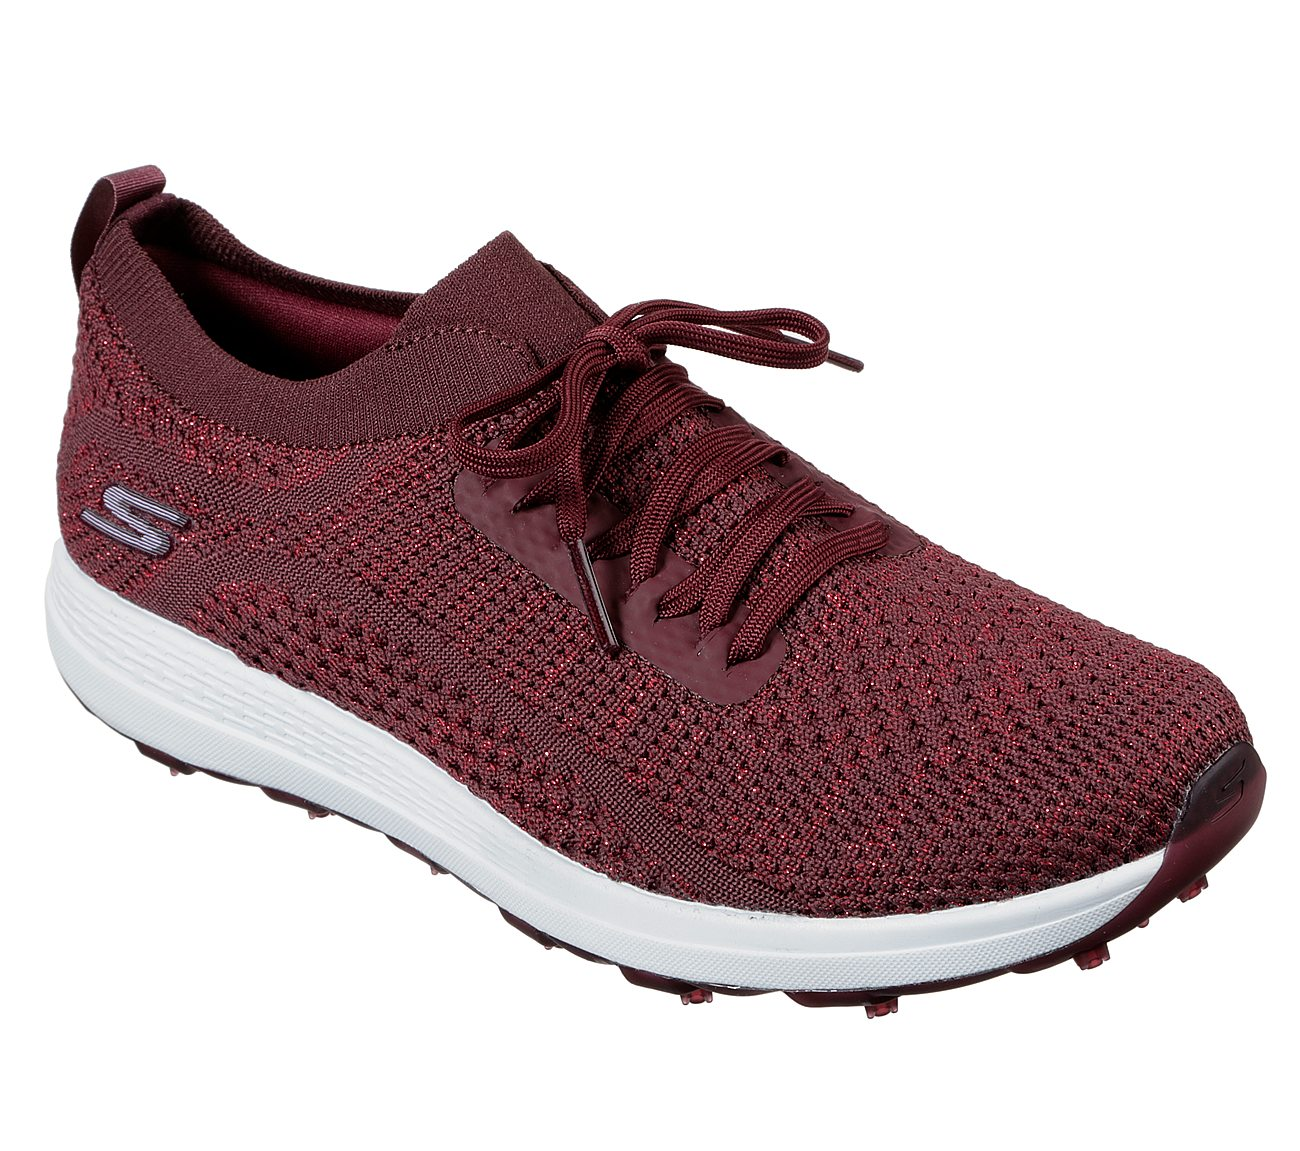 Skechers Women's Go Golf Max Glitter Burgundy Golf Shoe